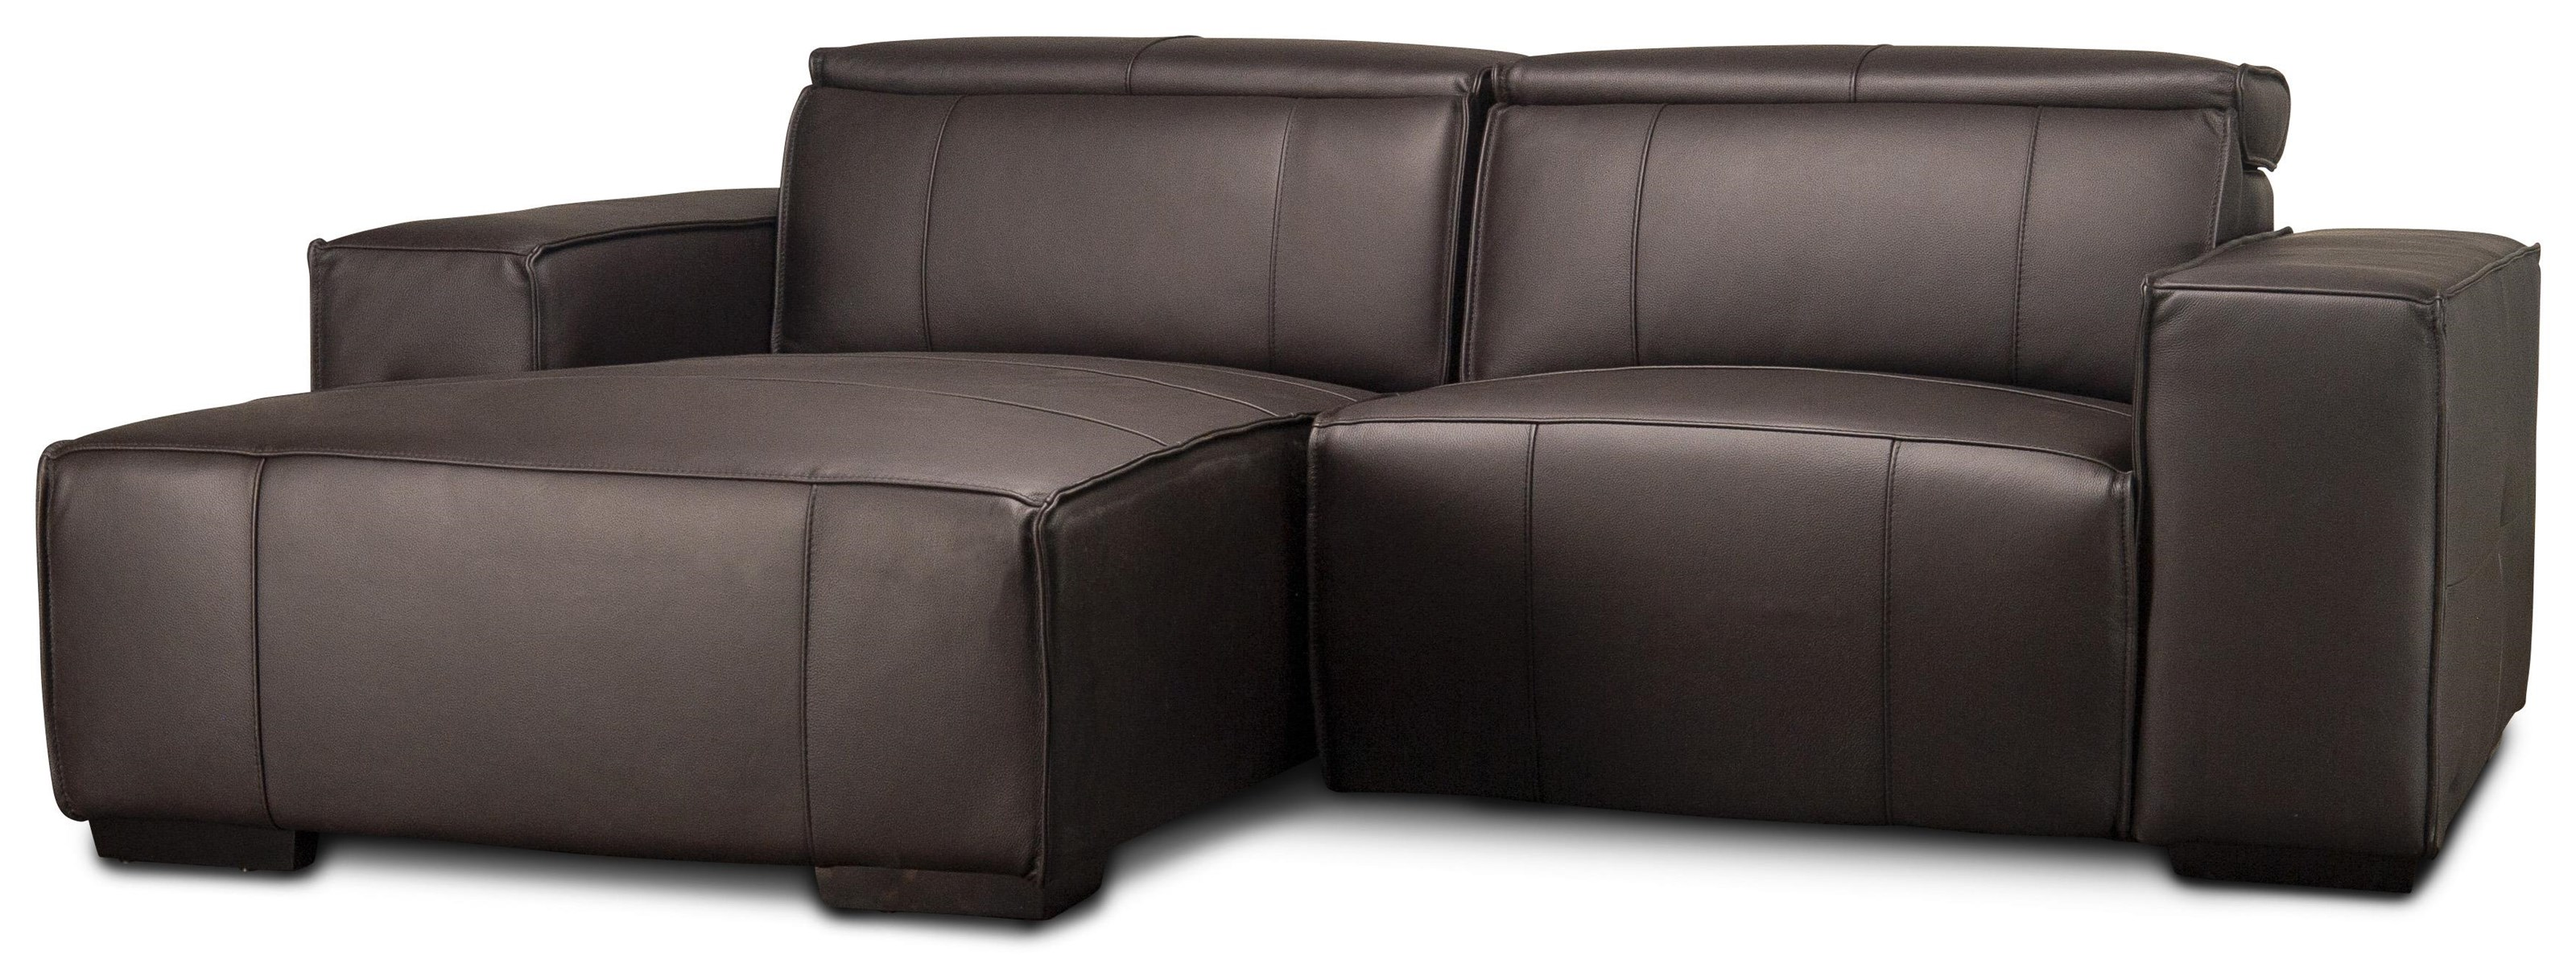 Mariella Mariella Leather Power Sectional by Abbyson at Morris Home